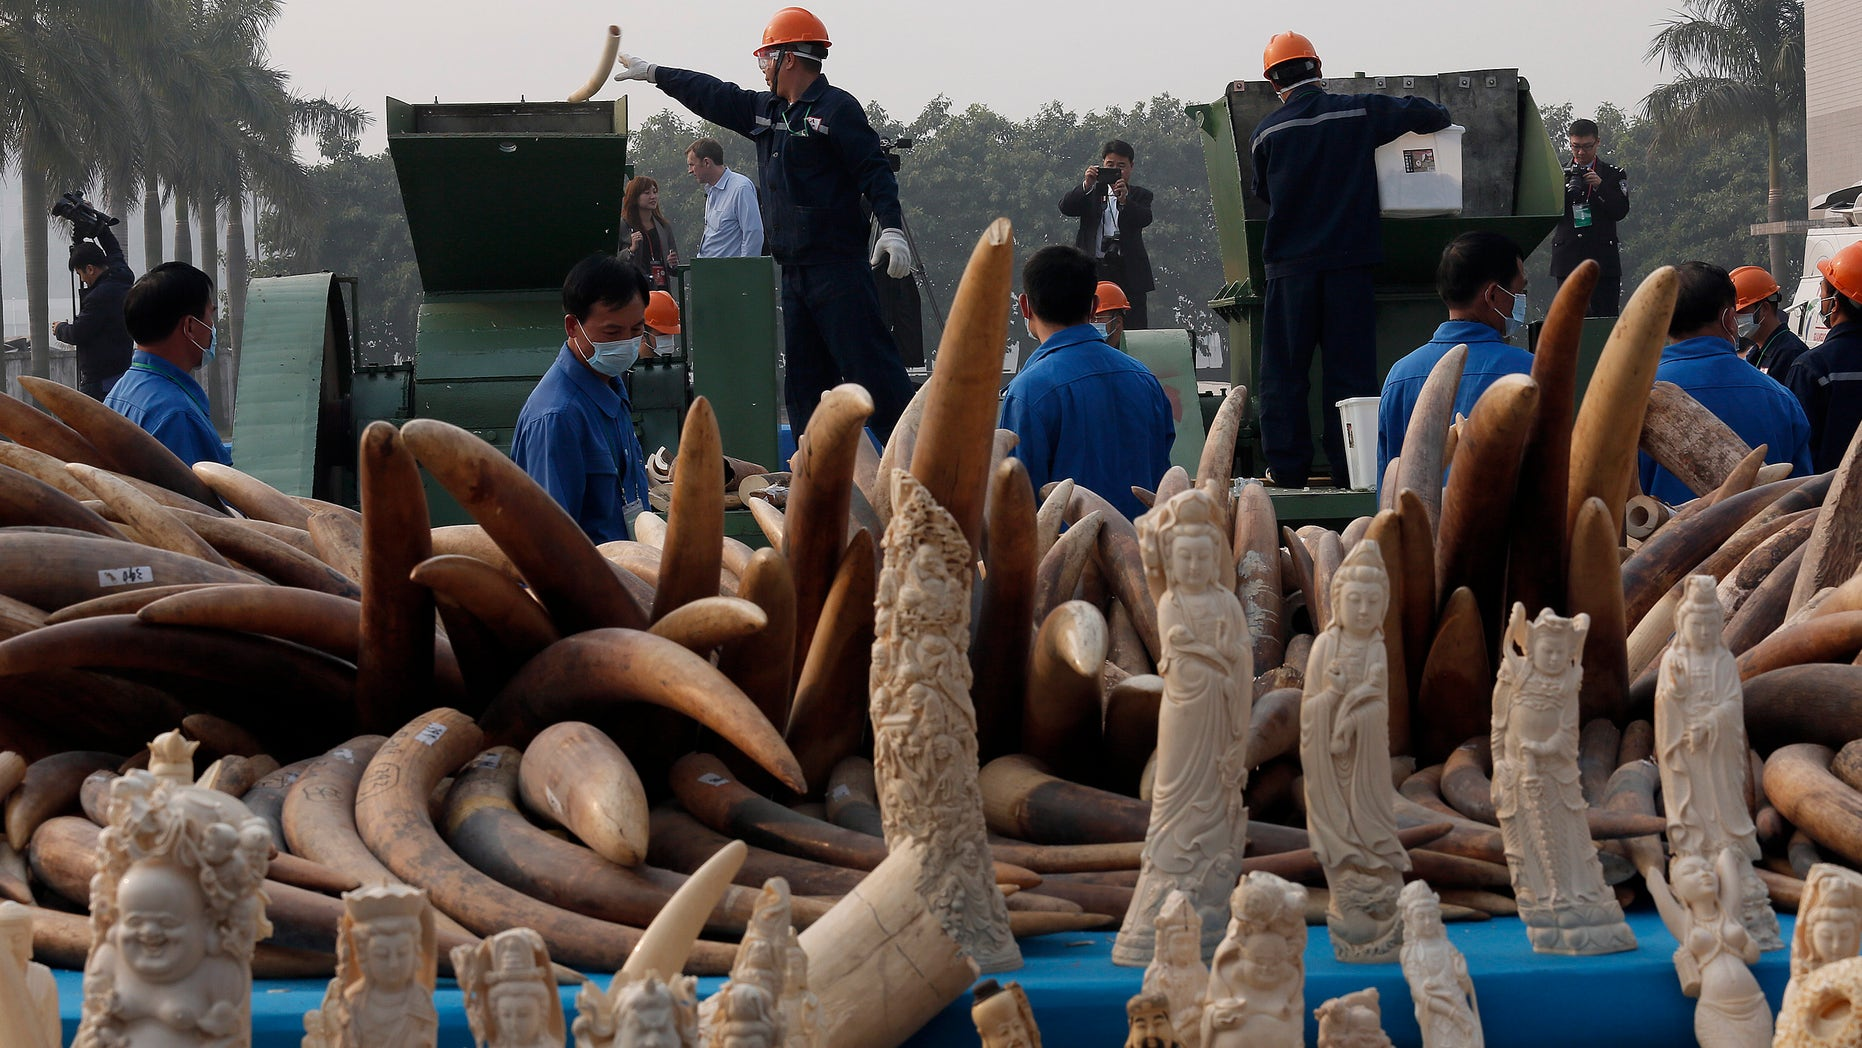 Jan. 6, 2014 - Workers destroy illegal ivory in Dongguan, southern Guangdong province, China. China destroyed about 6 tons of illegal ivory from its stockpile in an unprecedented move wildlife groups say shows growing concern about the black market trade by authorities in the world's biggest market for elephant tusks.